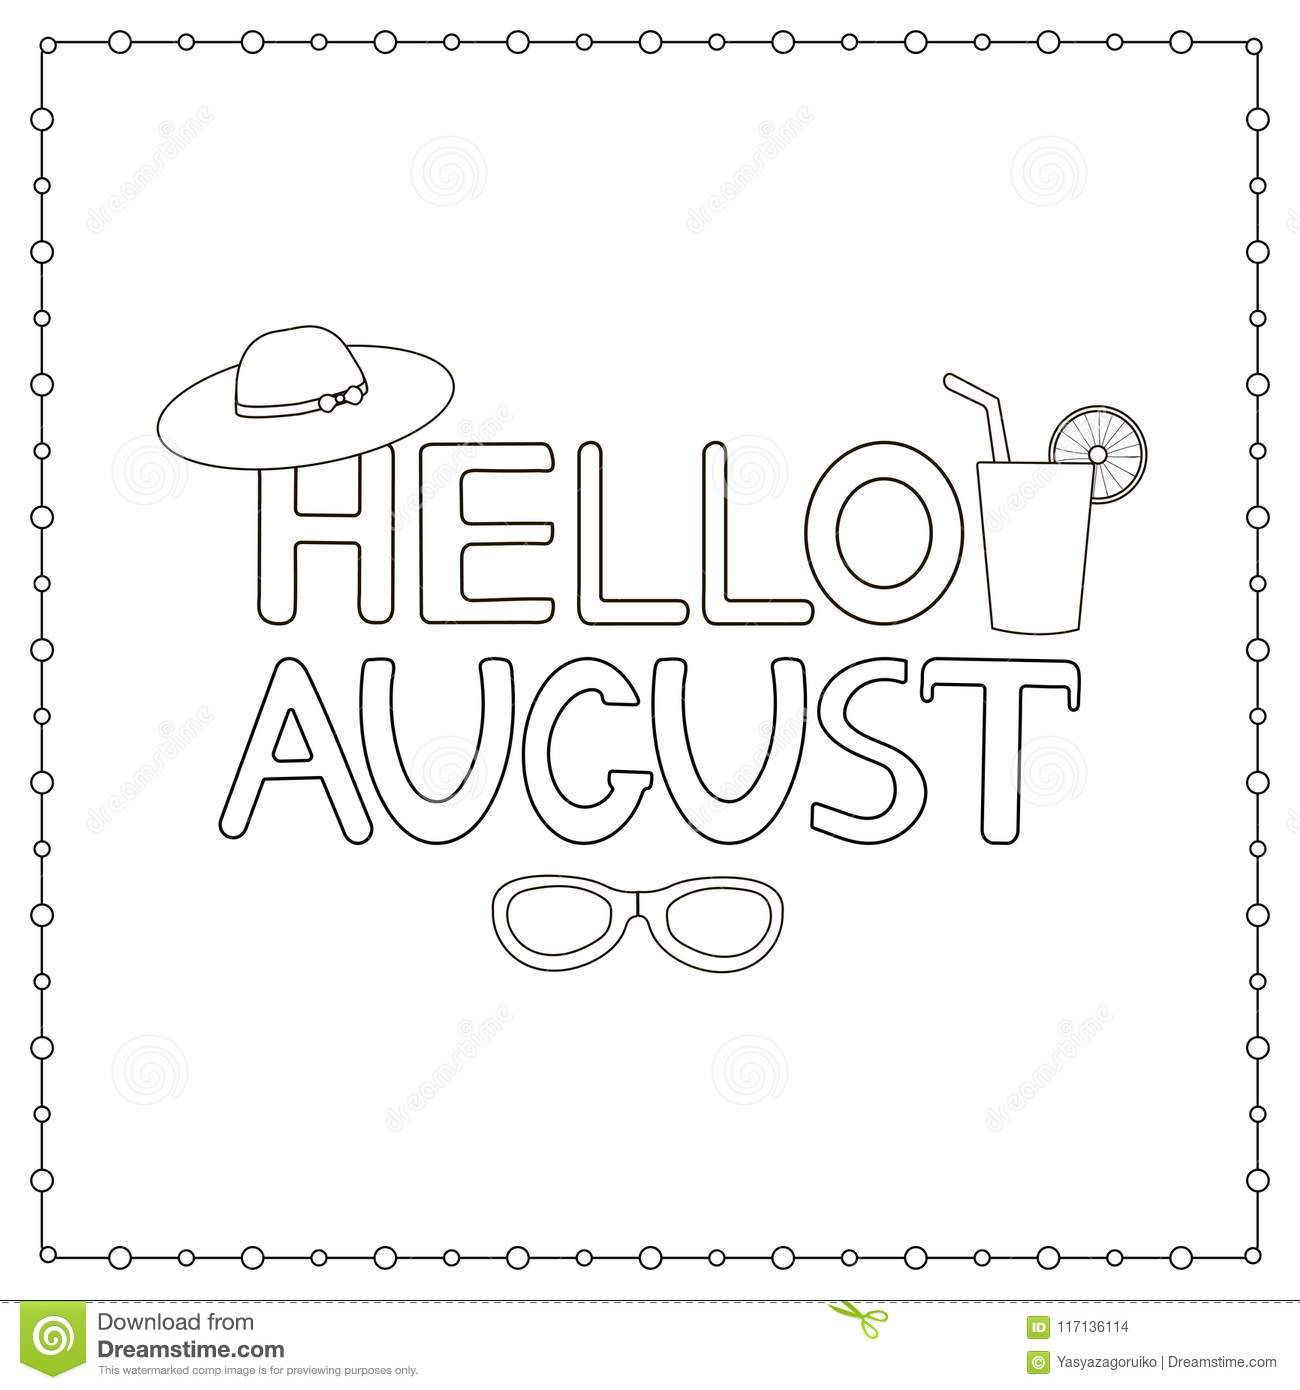 August Coloring Page Stock Illustrations 81 August Coloring Page Stock Illustrations Vectors Clipart Dreamstime